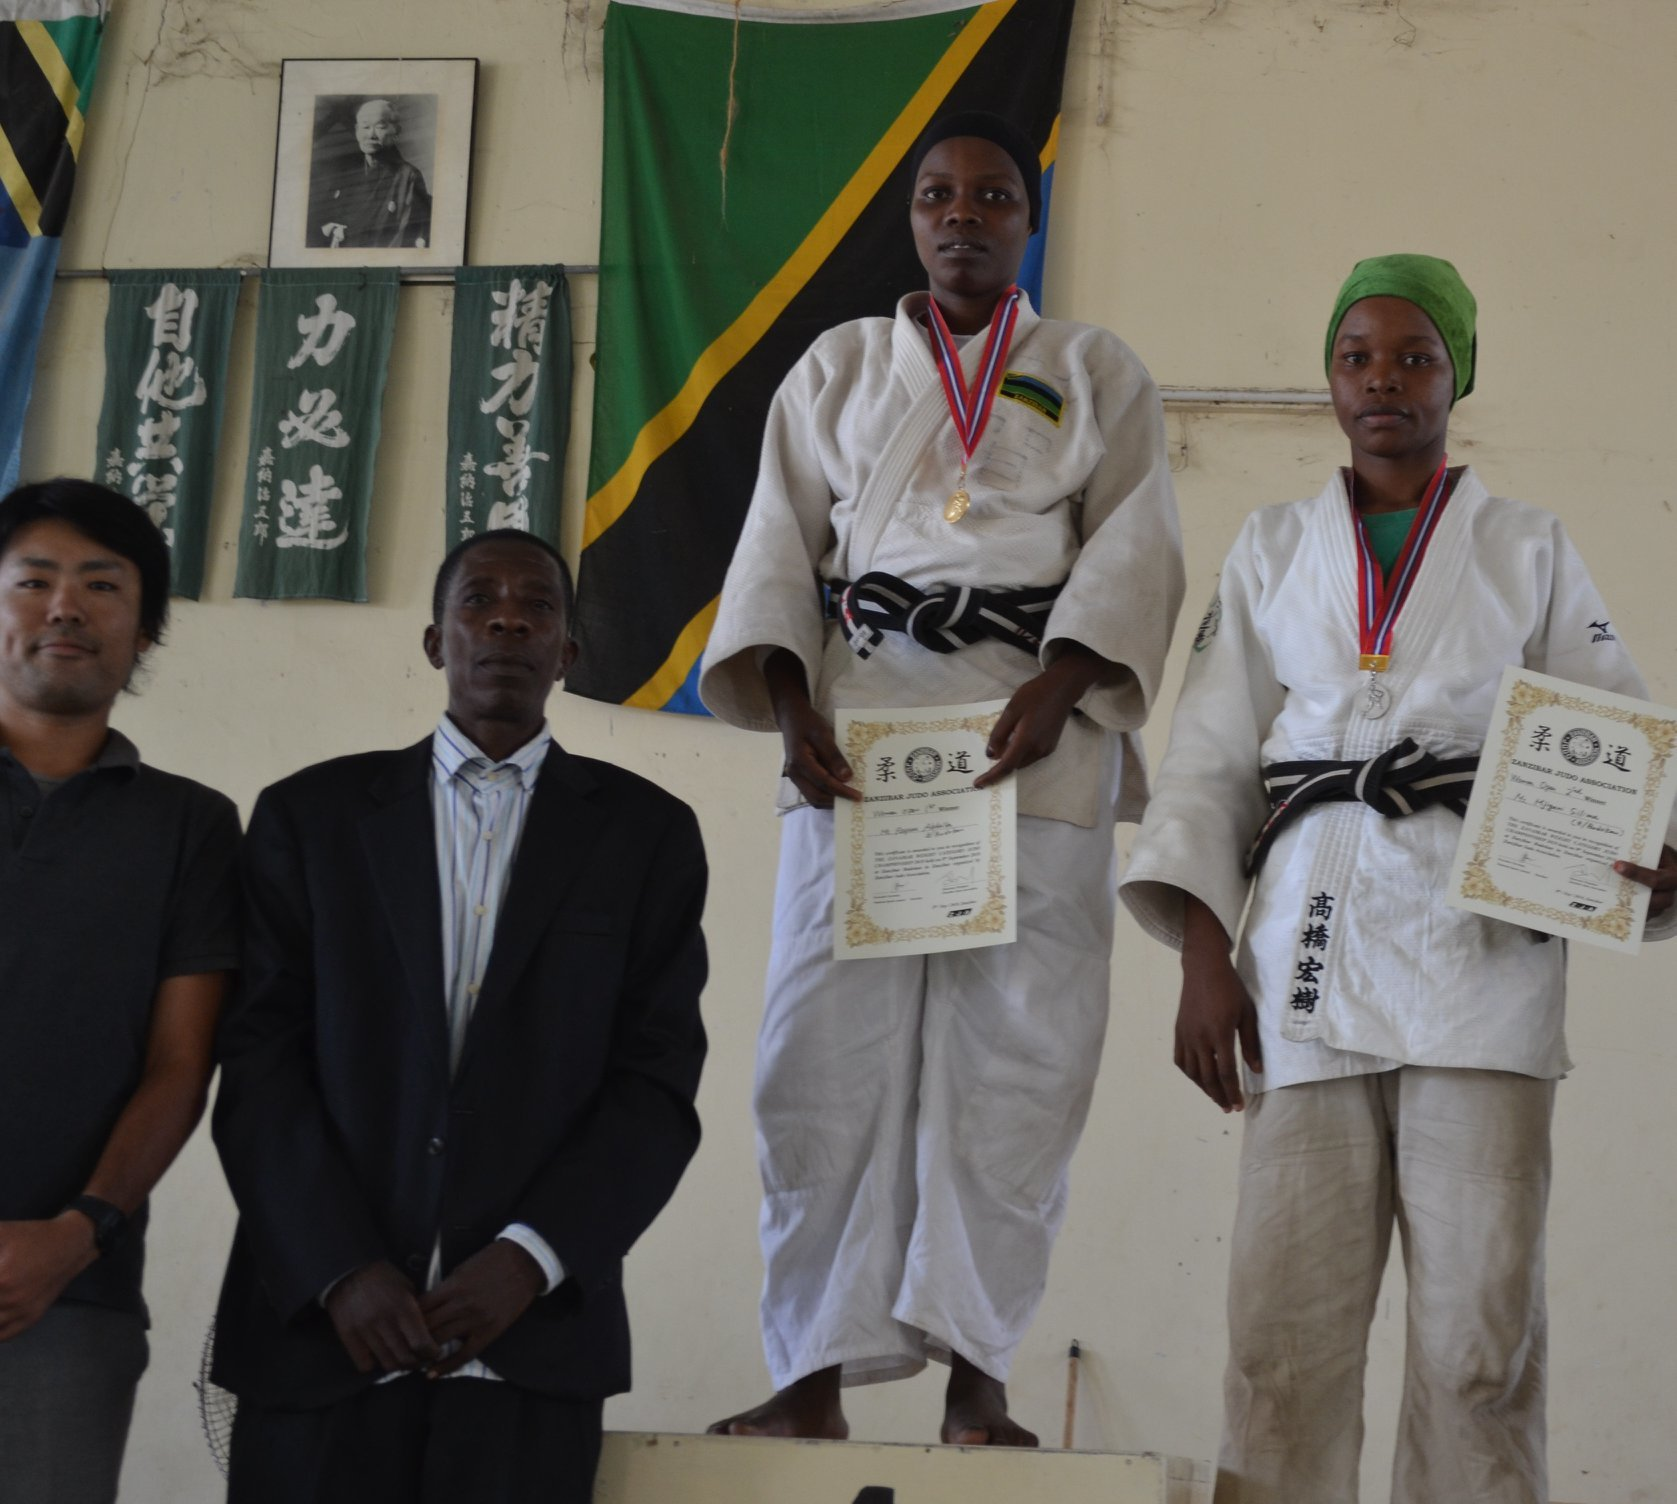 ZANZIBAR WEGHT CATEGORY JUDO CHAMPIONSHIP2018~ザンジバル柔道選手権大会2018_a0088841_10362600.jpg